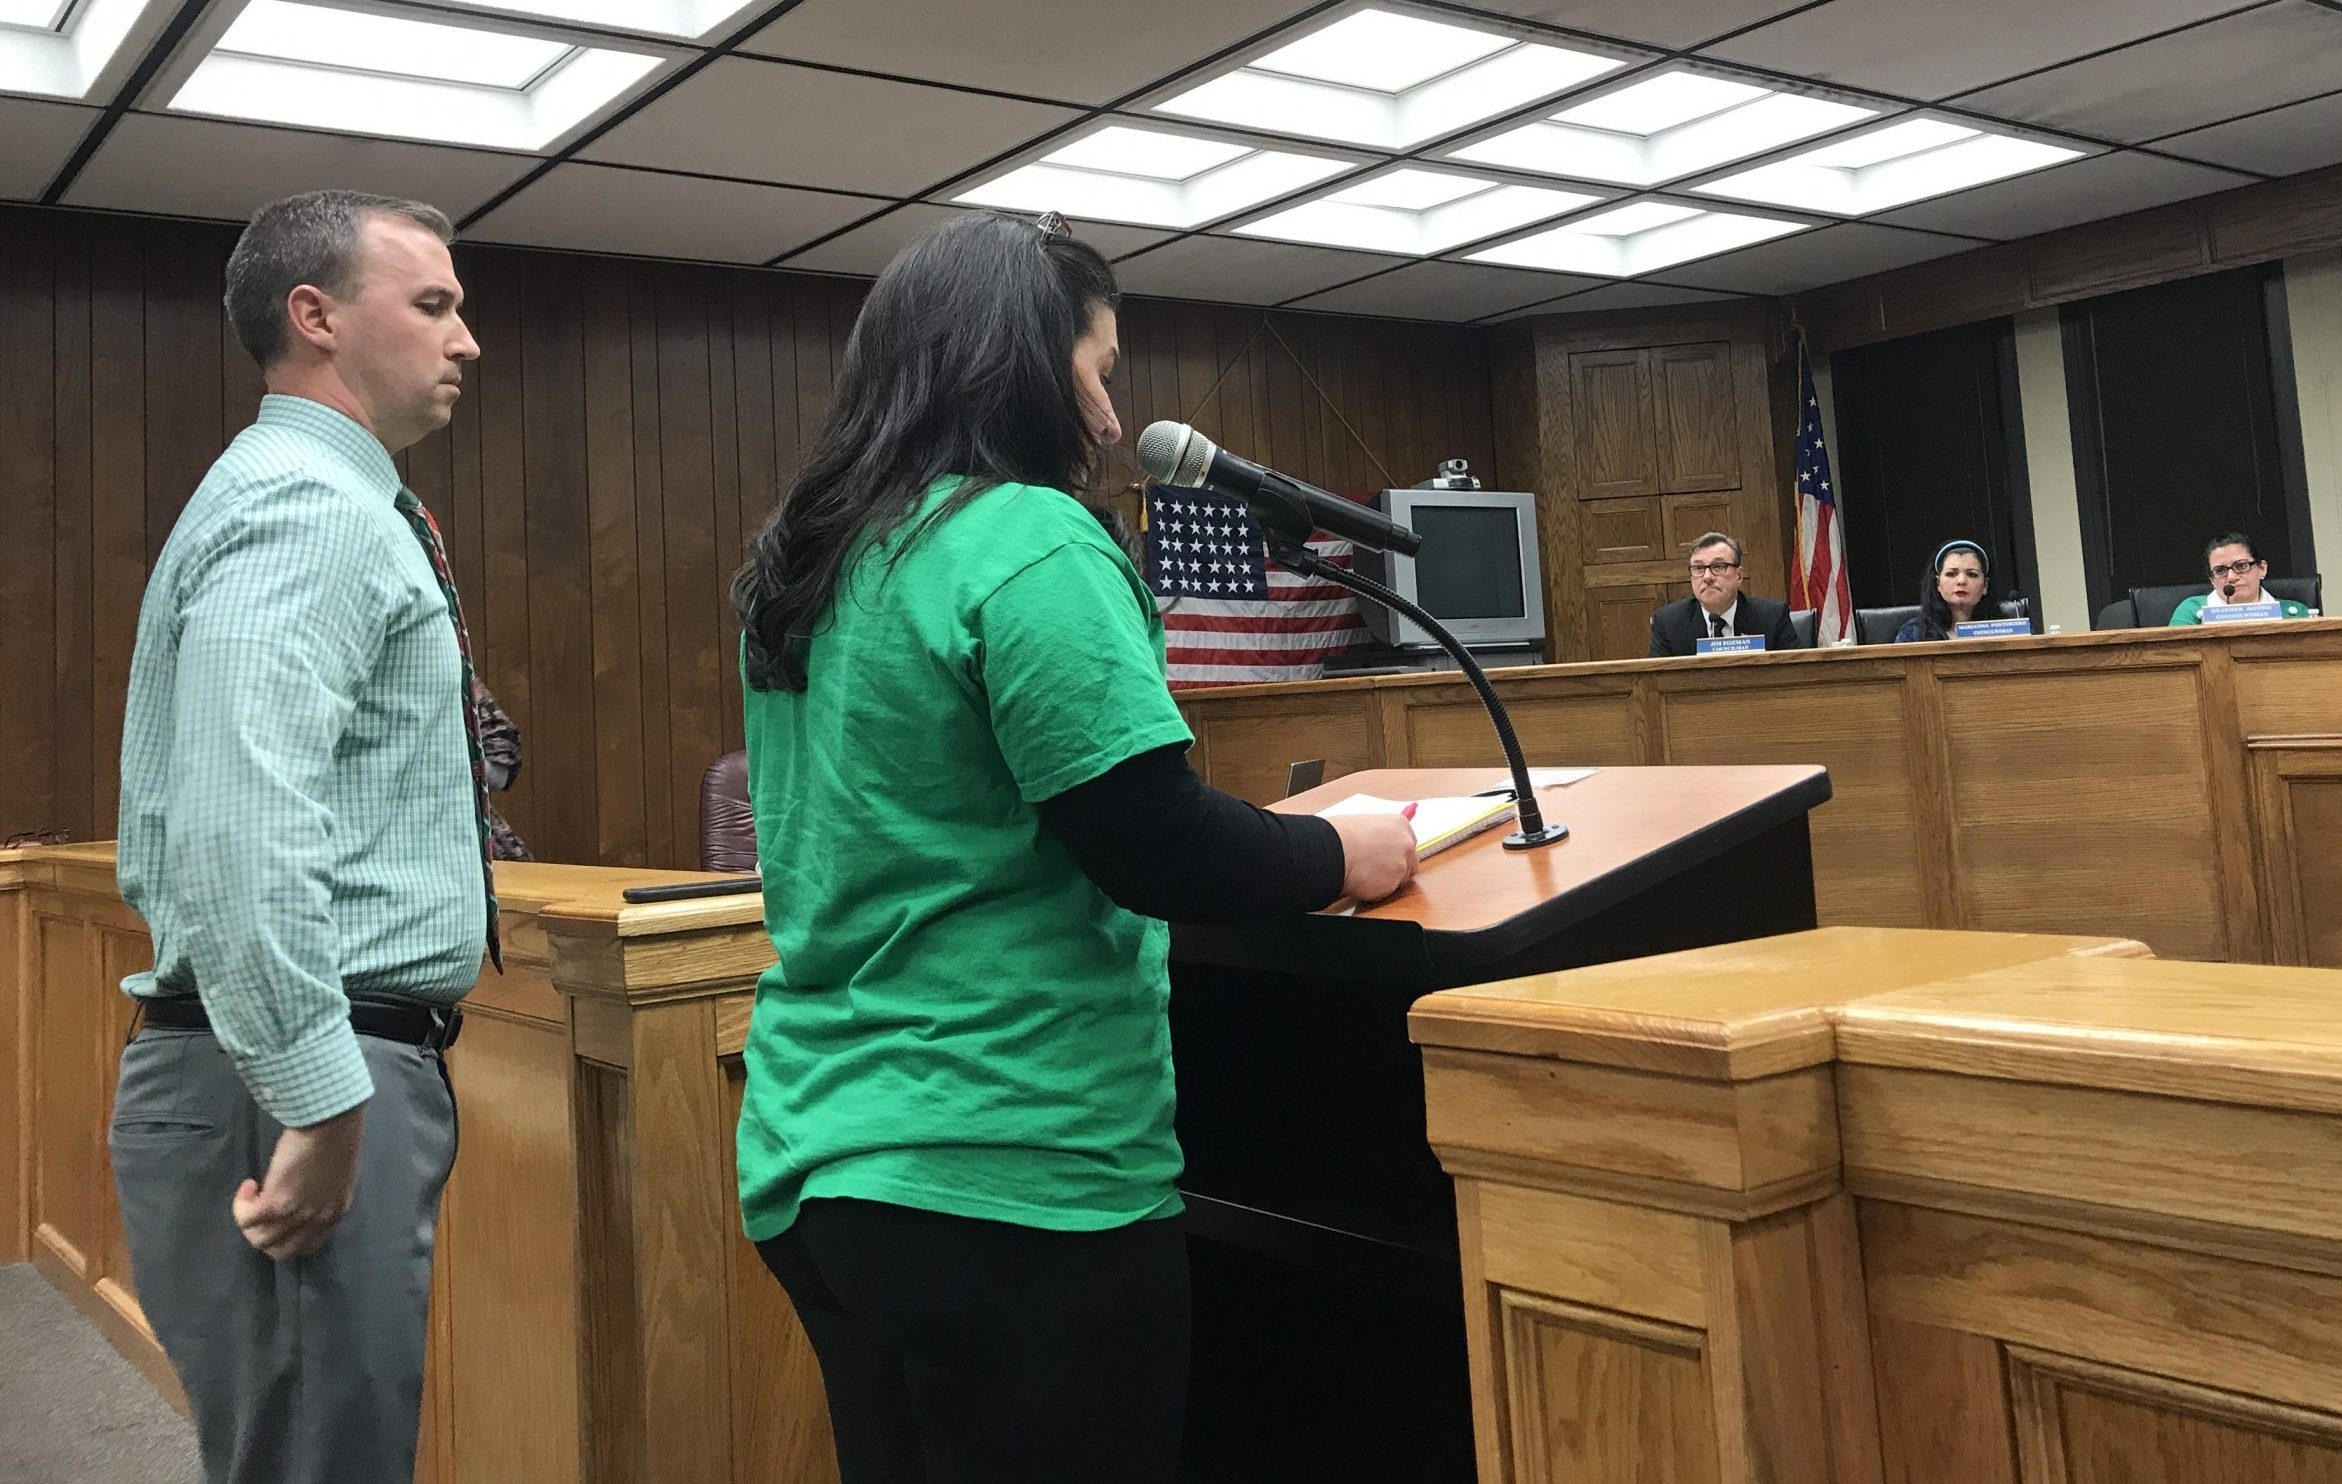 Brick school board president Stephanie Wohlrab and Acting Superintendent Sean Cranston address the Brick mayor and council, Dec. 17, 2019. (Photo: Daniel Nee)